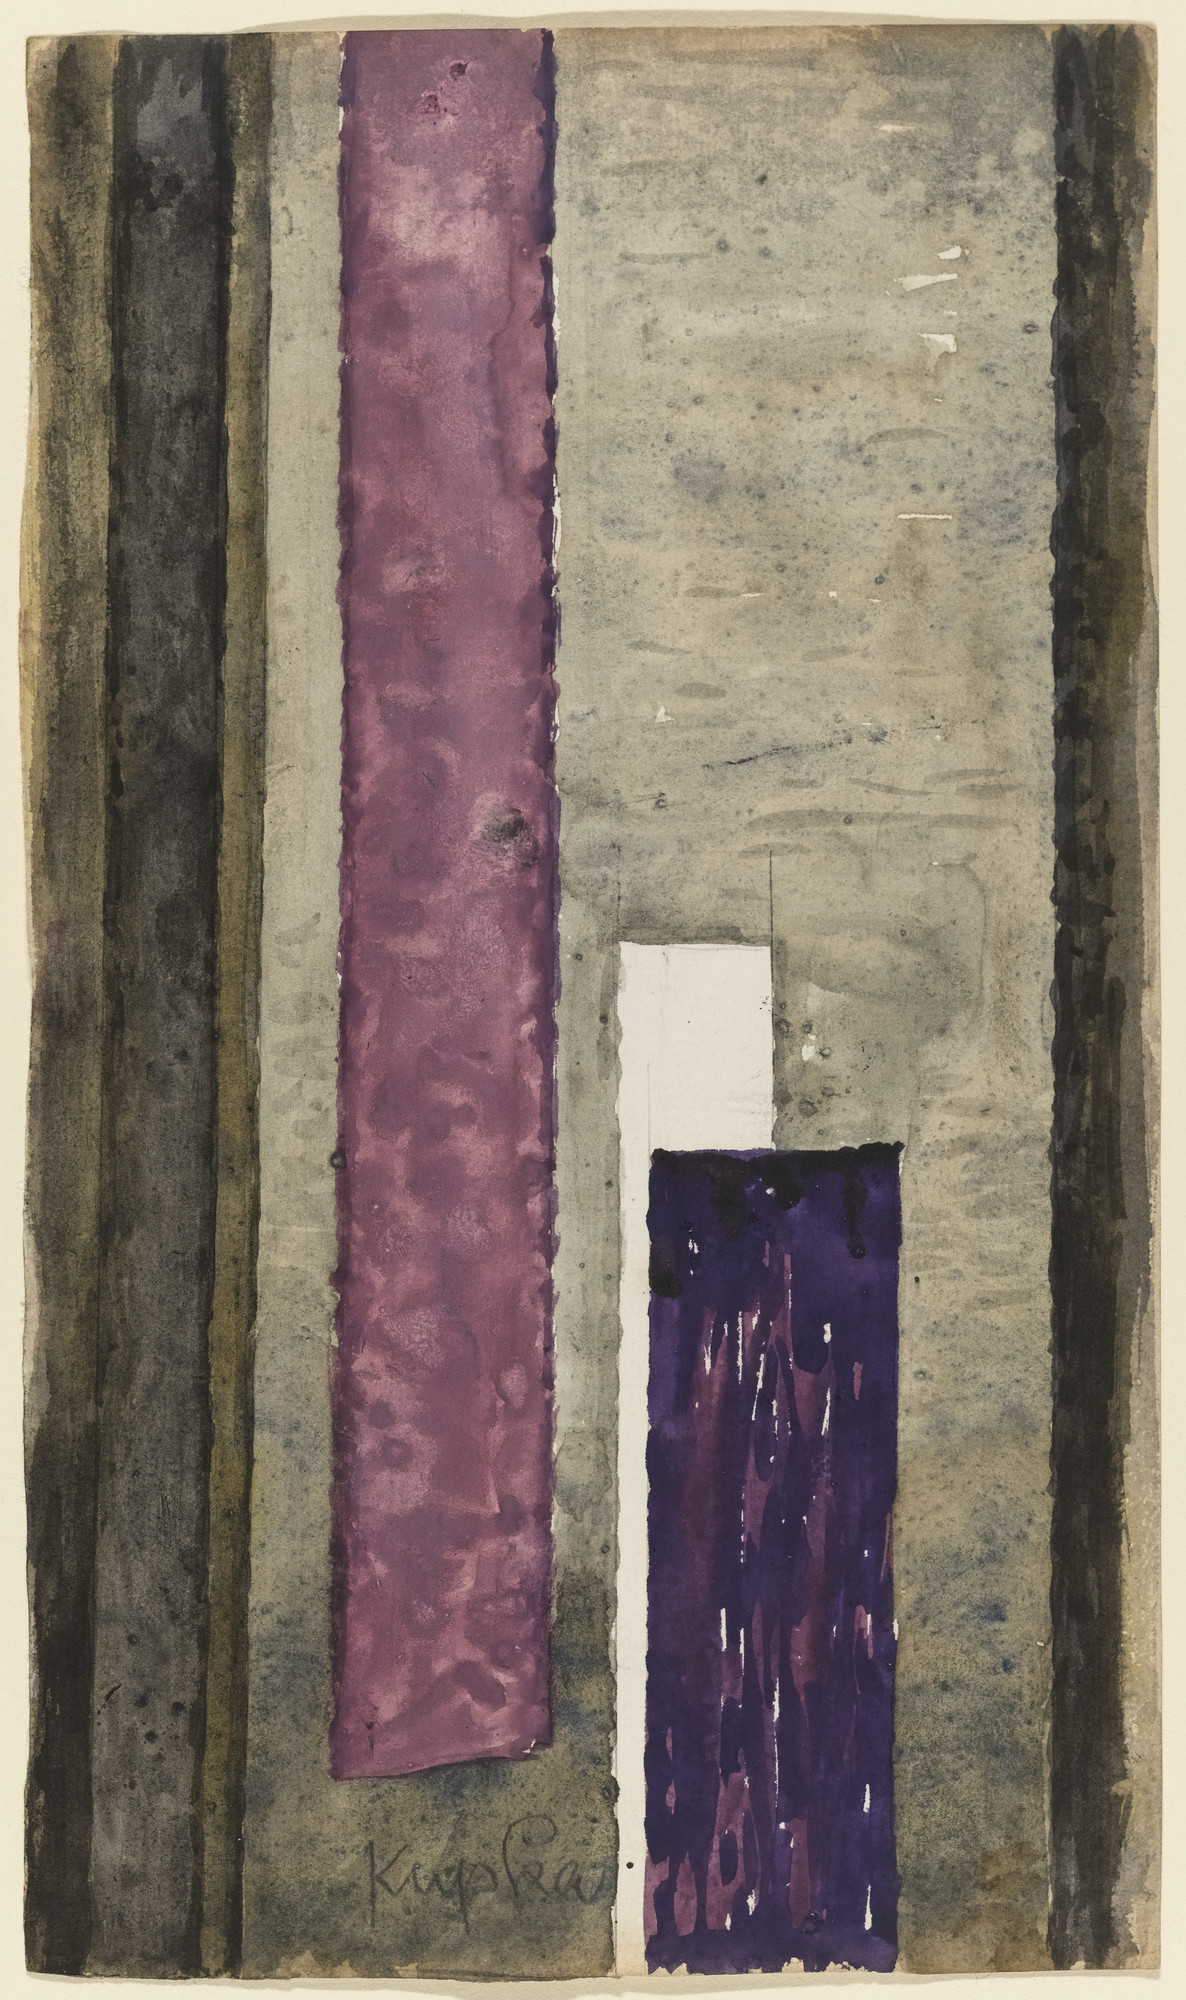 František Kupka. Replica (1946) of Vertical Planes. (1946)